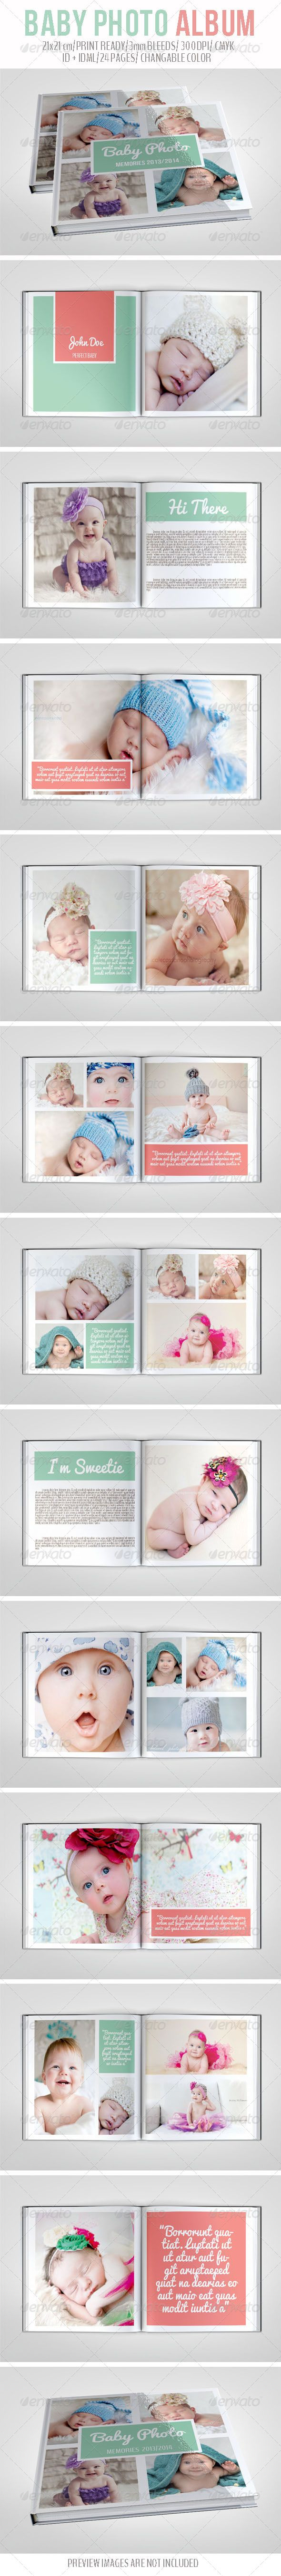 Baby Photo Album - #Photo #Albums Print #Templates Download here: https://graphicriver.net/item/baby-photo-album/6964950?ref=alena994